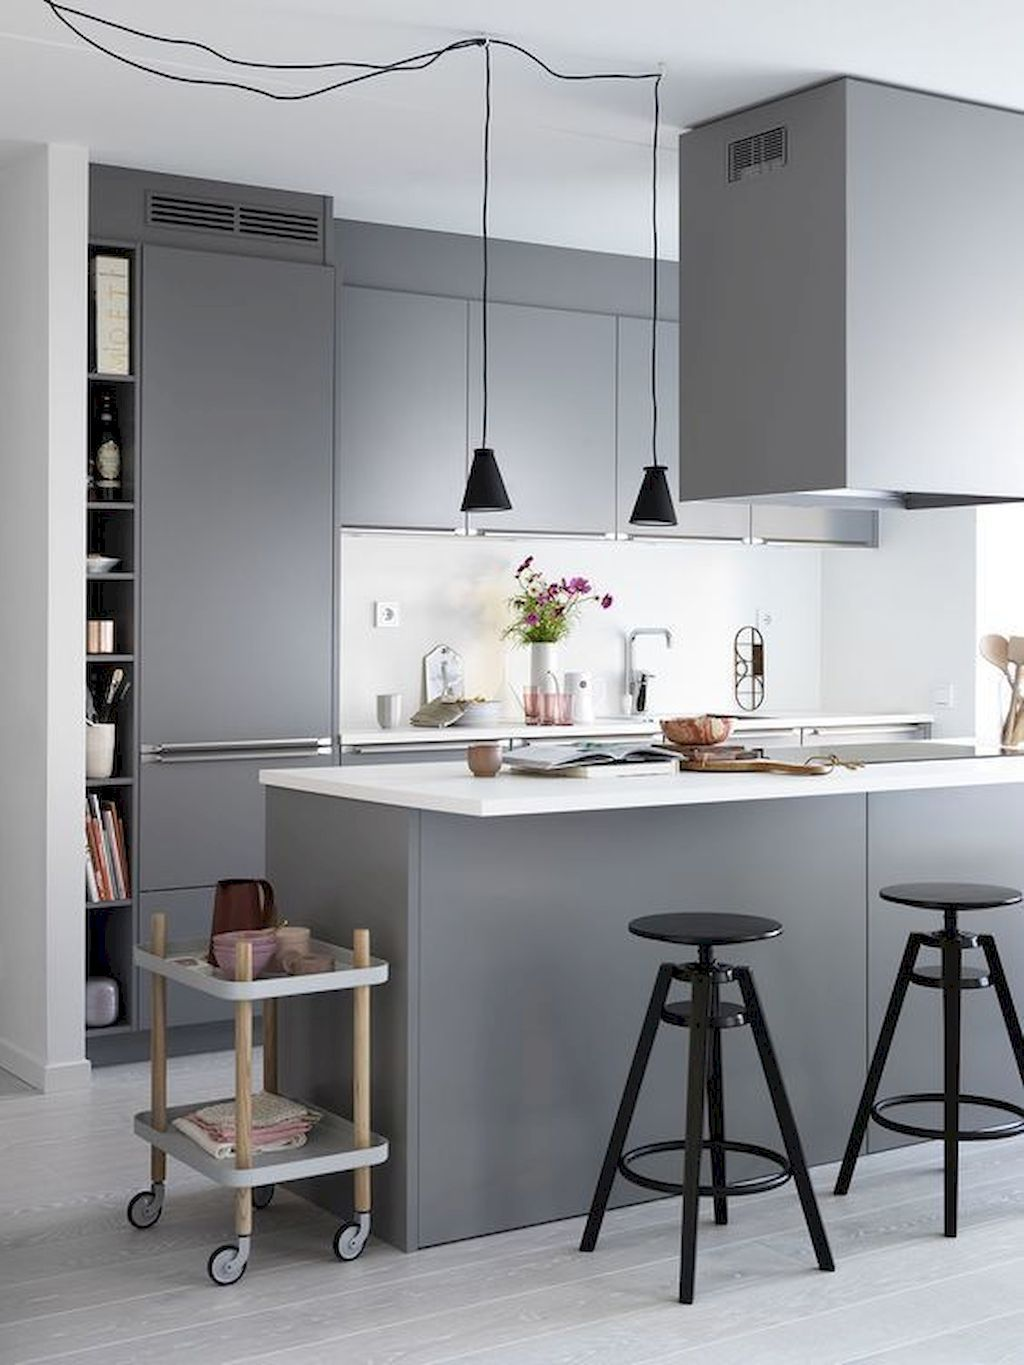 100 great design ideas scandinavian for your kitchen (75 ...